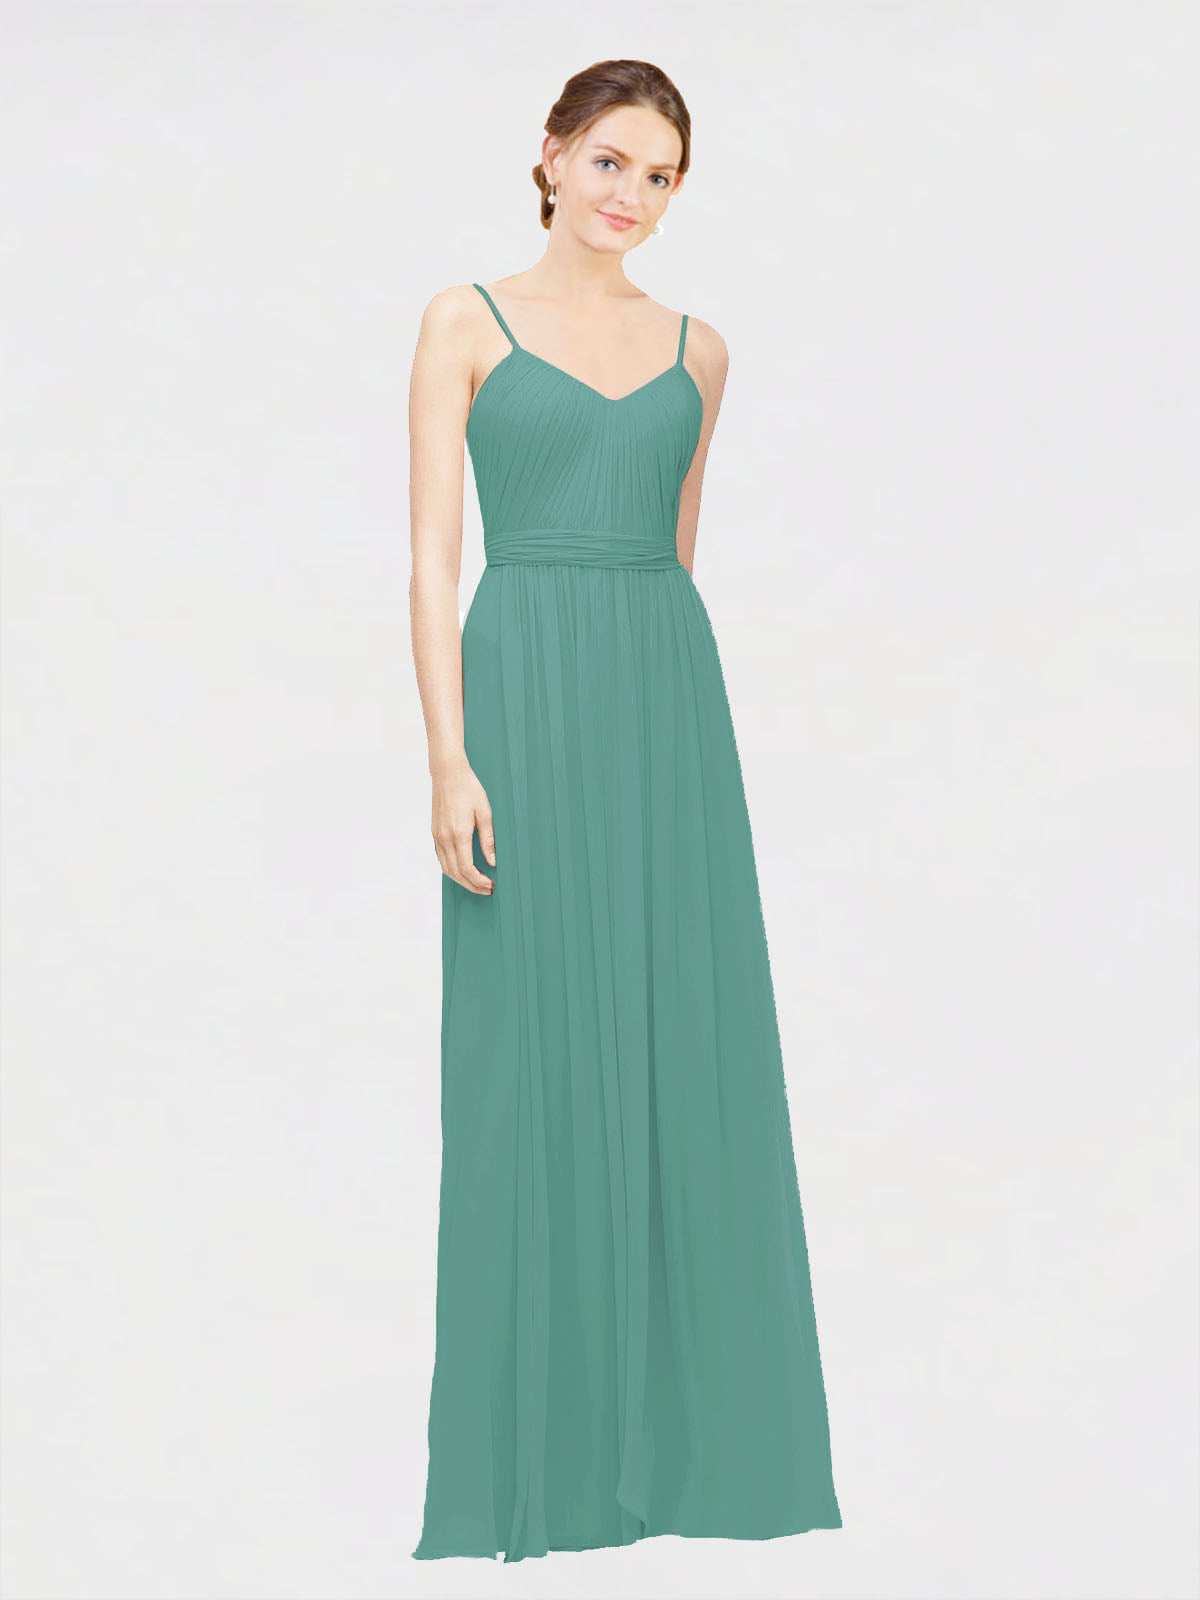 Long A-Line V-Neck, Spaghetti Straps Sleeveless Icelandic Silver Chiffon Bridesmaid Dress Lylah